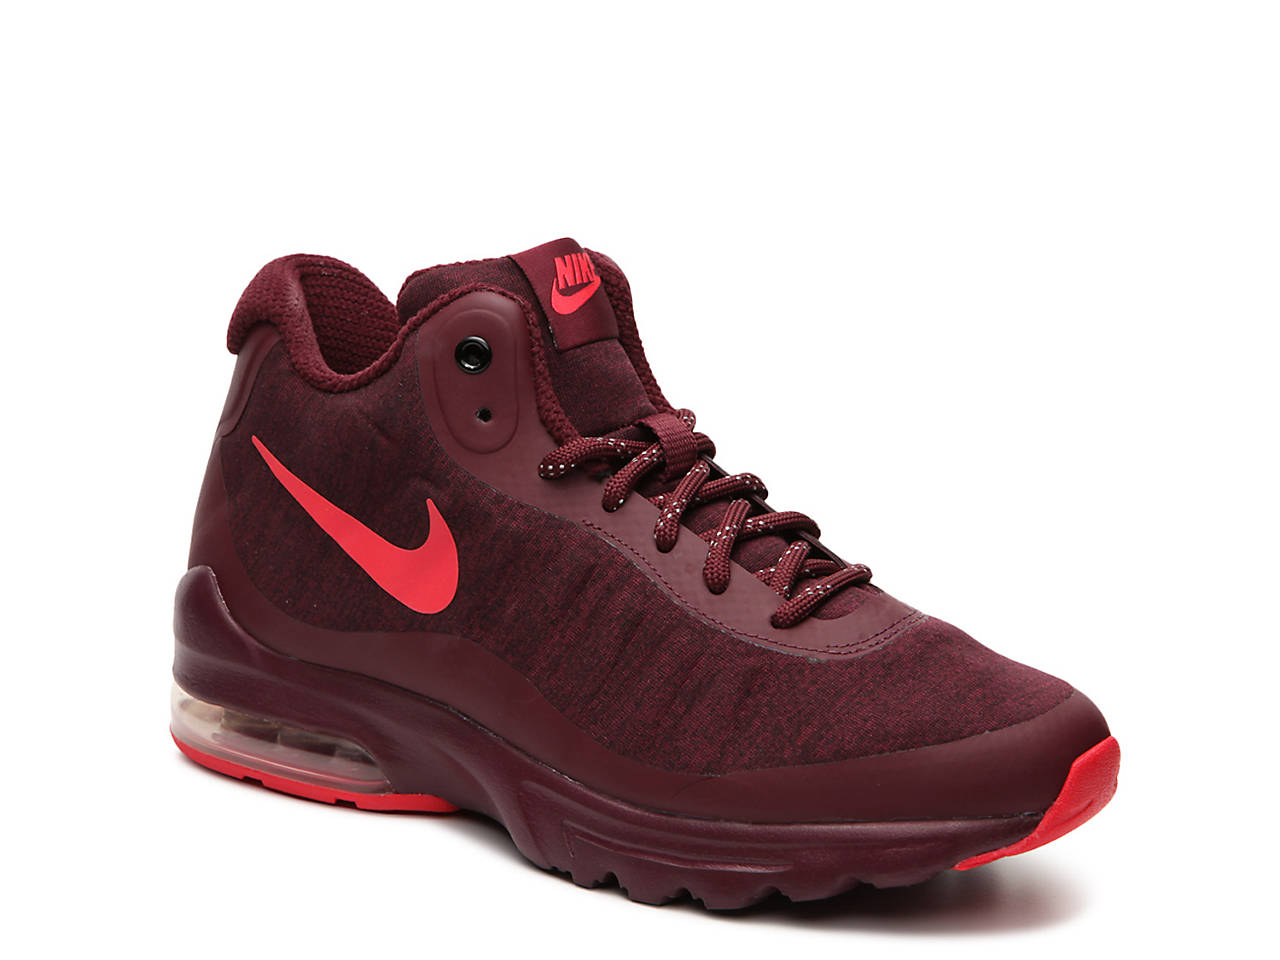 367c31012af Nike Air Max Invigor Mid-Top Sneaker - Women s Women s Shoes